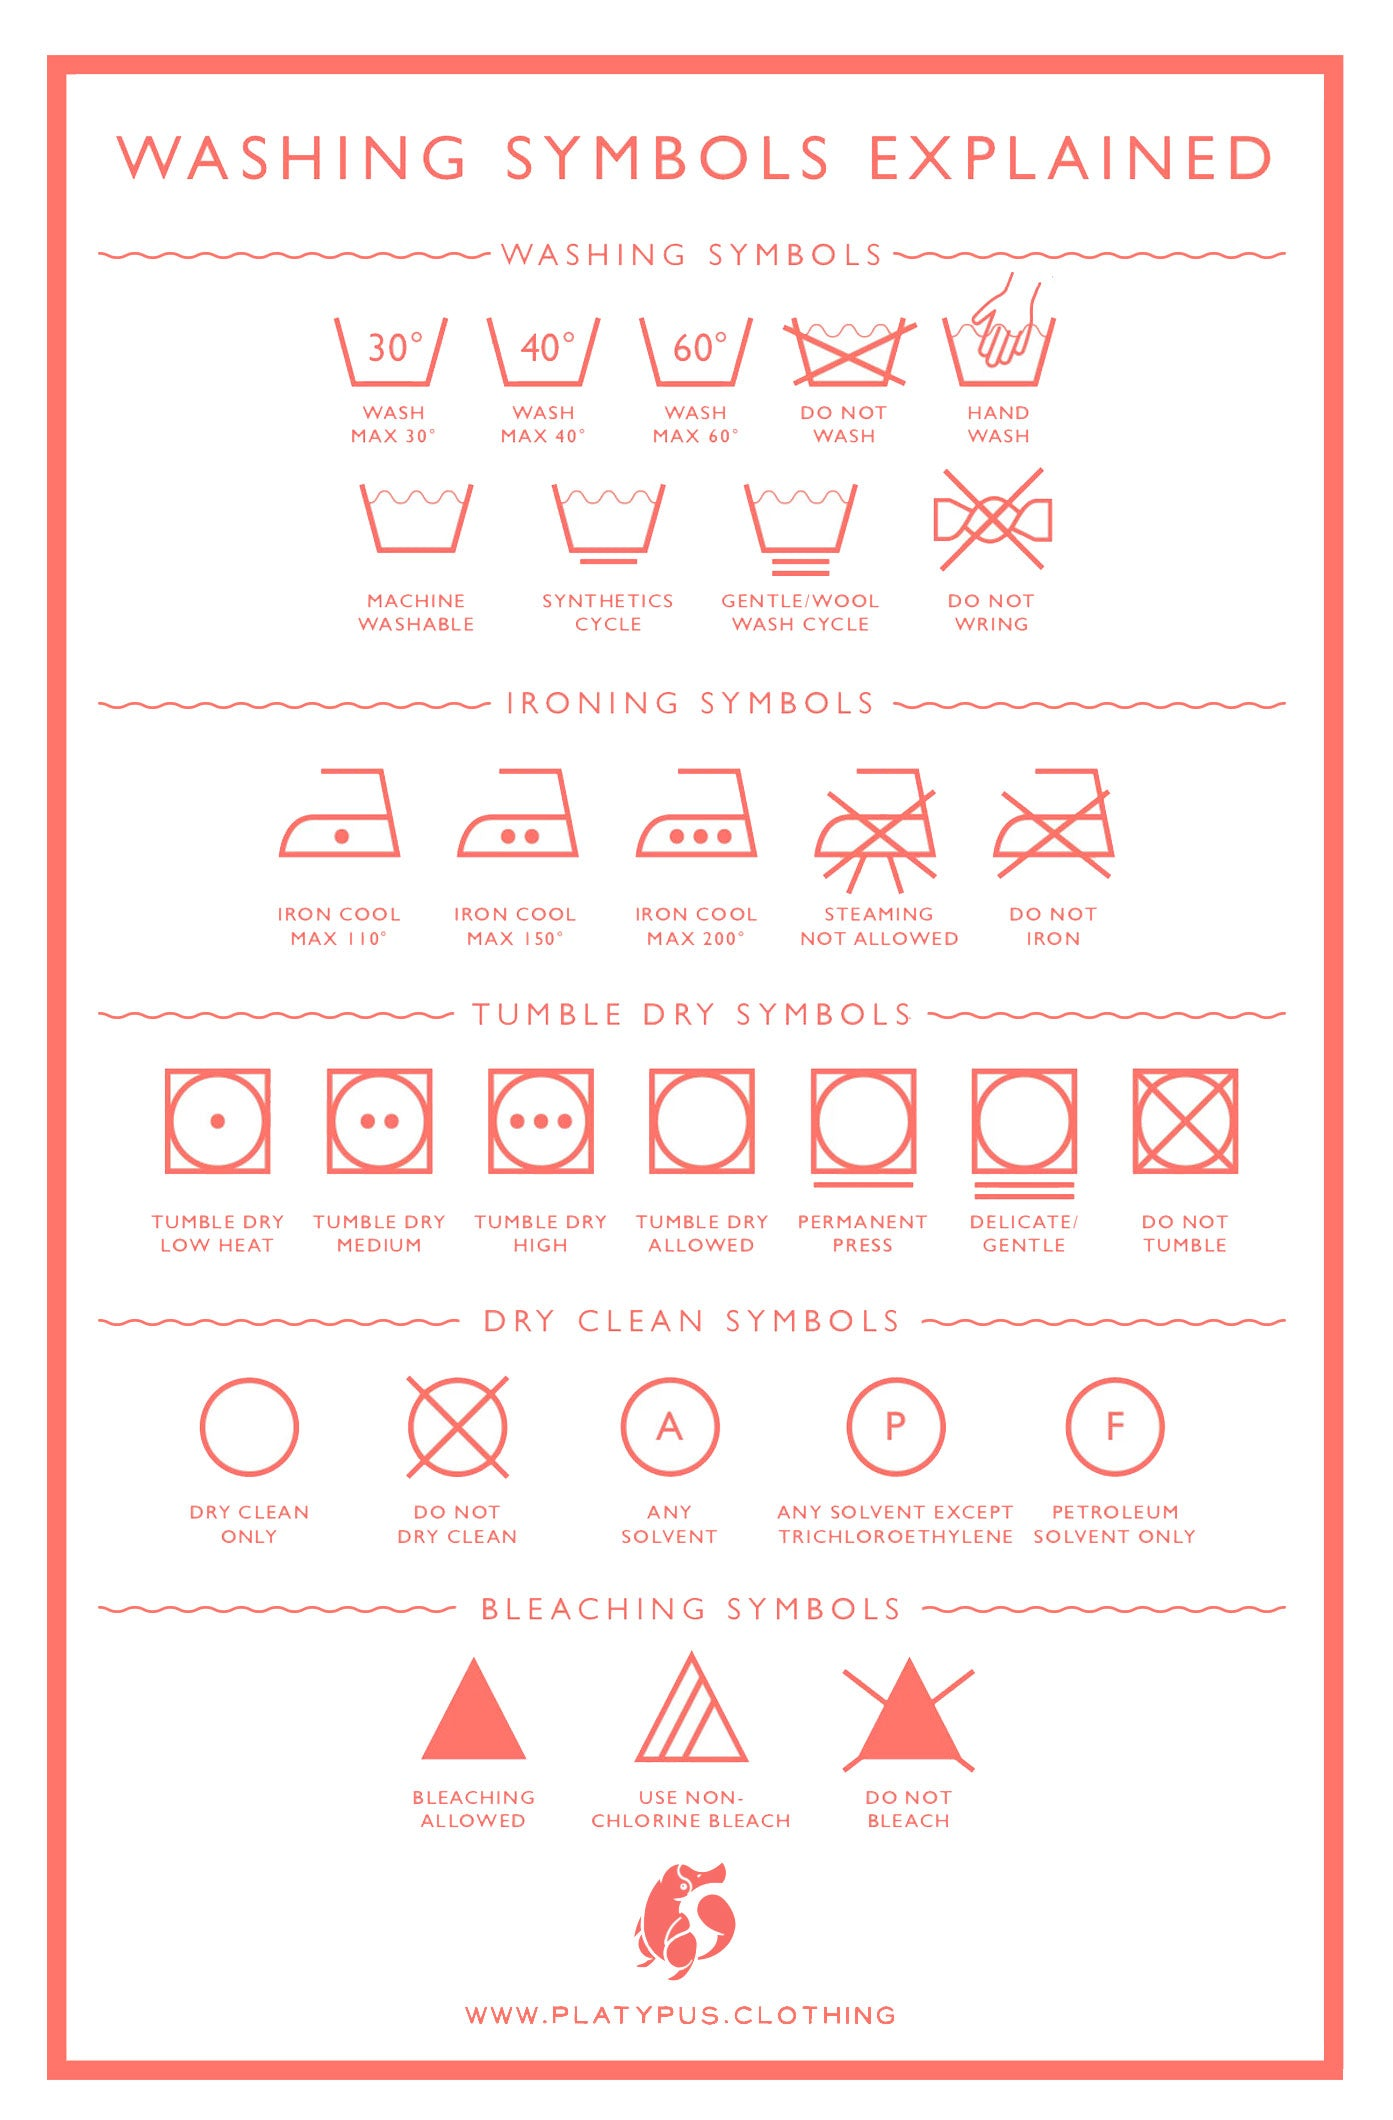 Guide to what do Laundry symbols mean and explanations